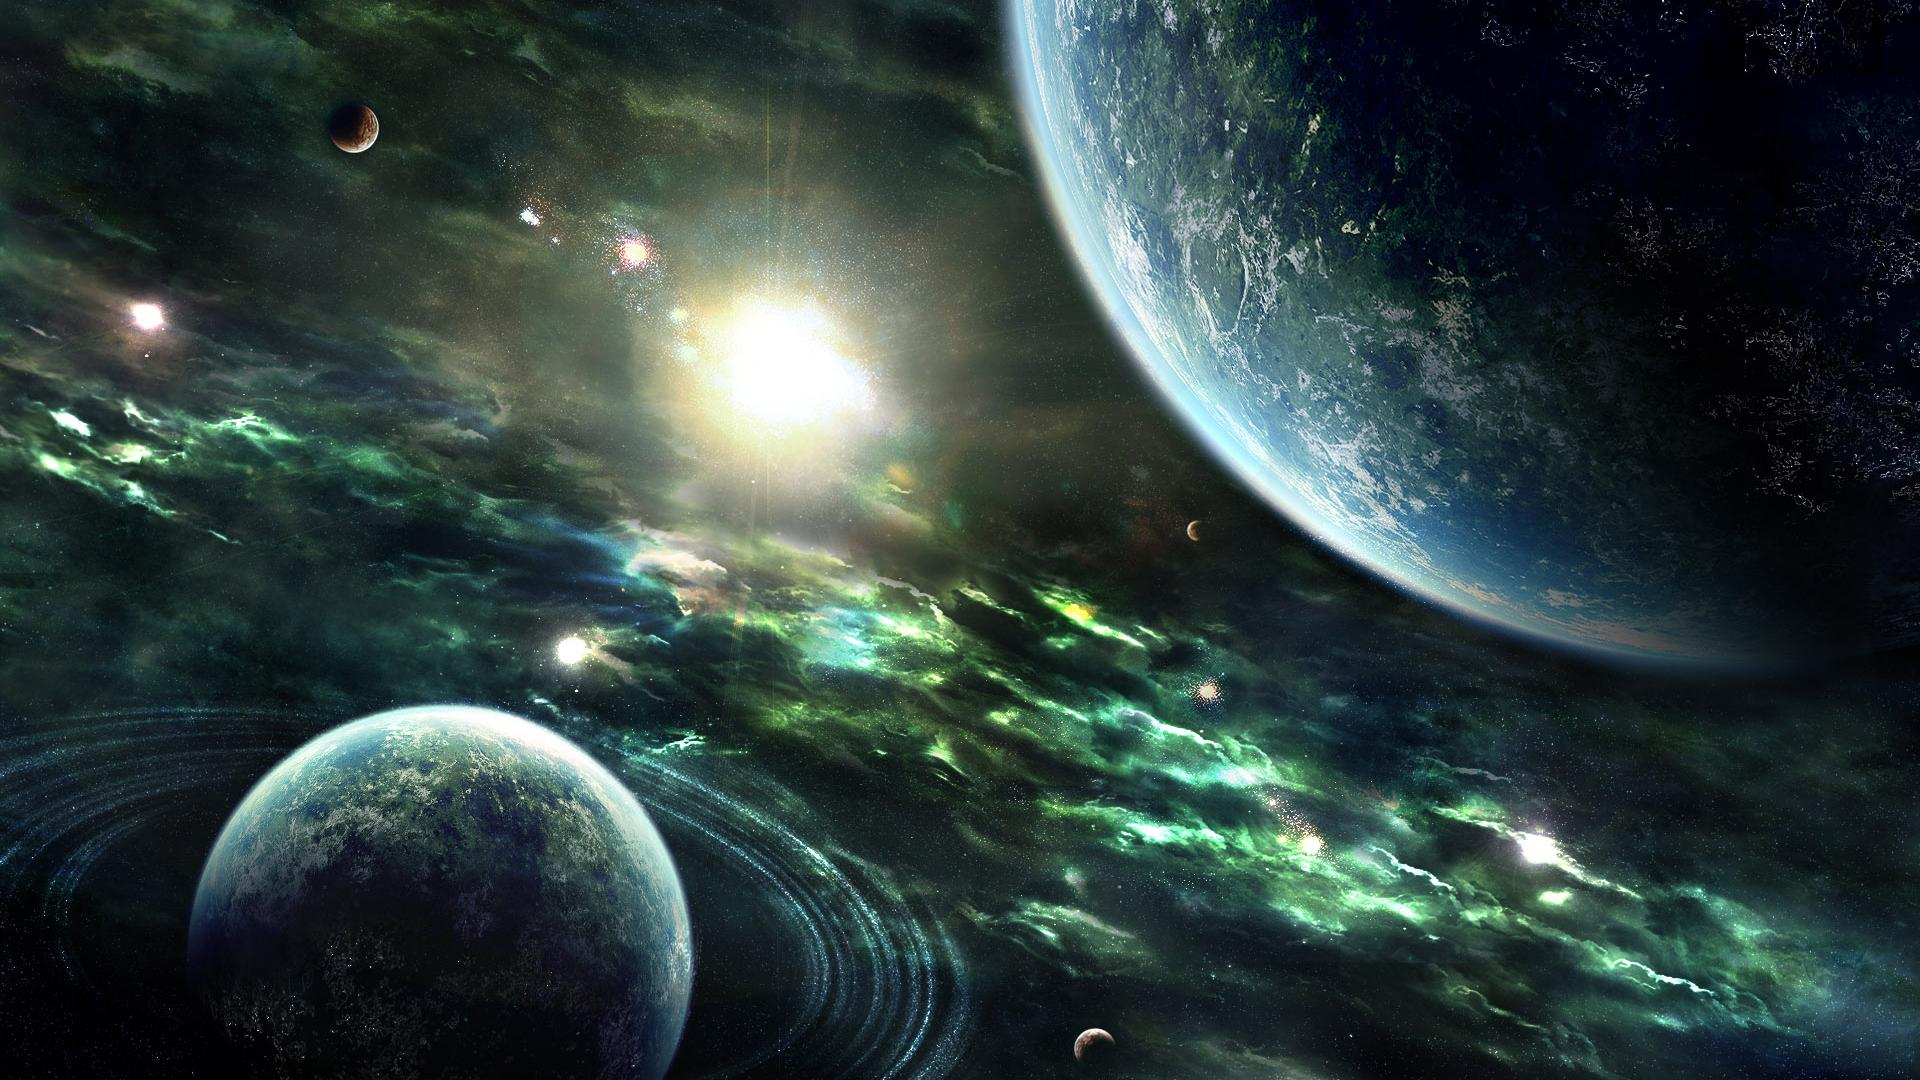 wallpaper space planet the - photo #47